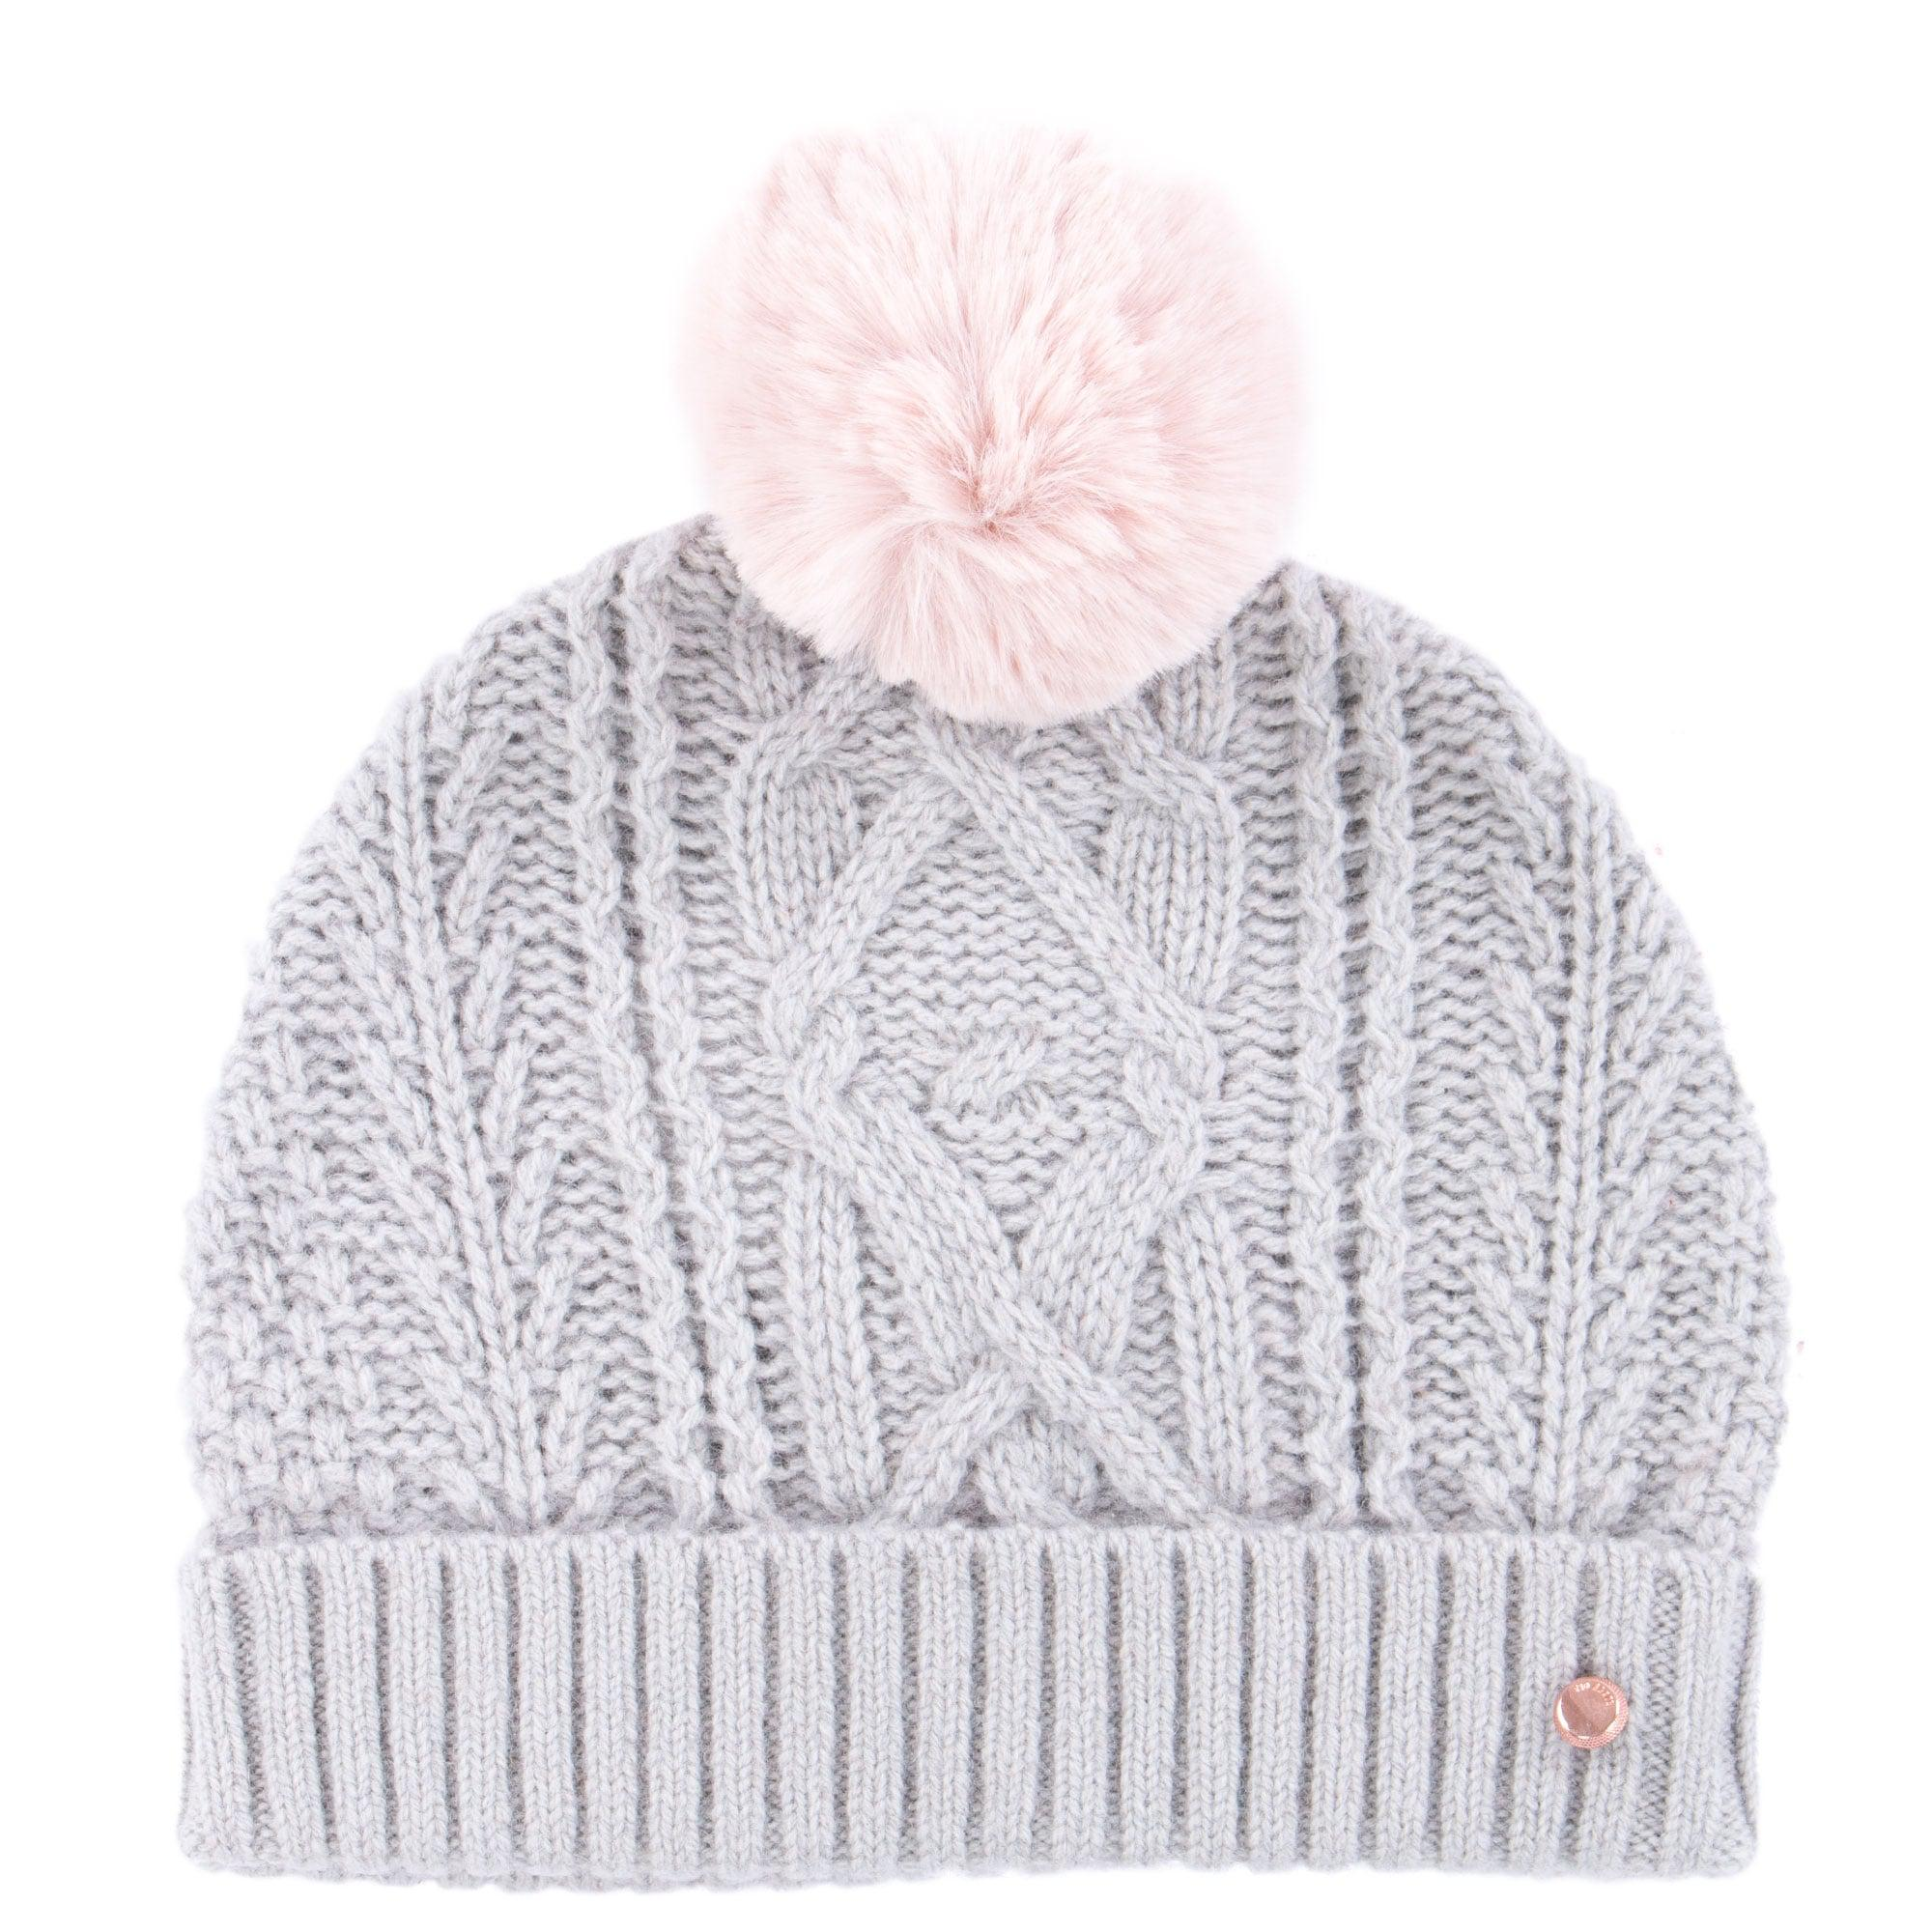 Ted Baker Kyliee Bobble Hat in Gray - Lyst 80d933498d22